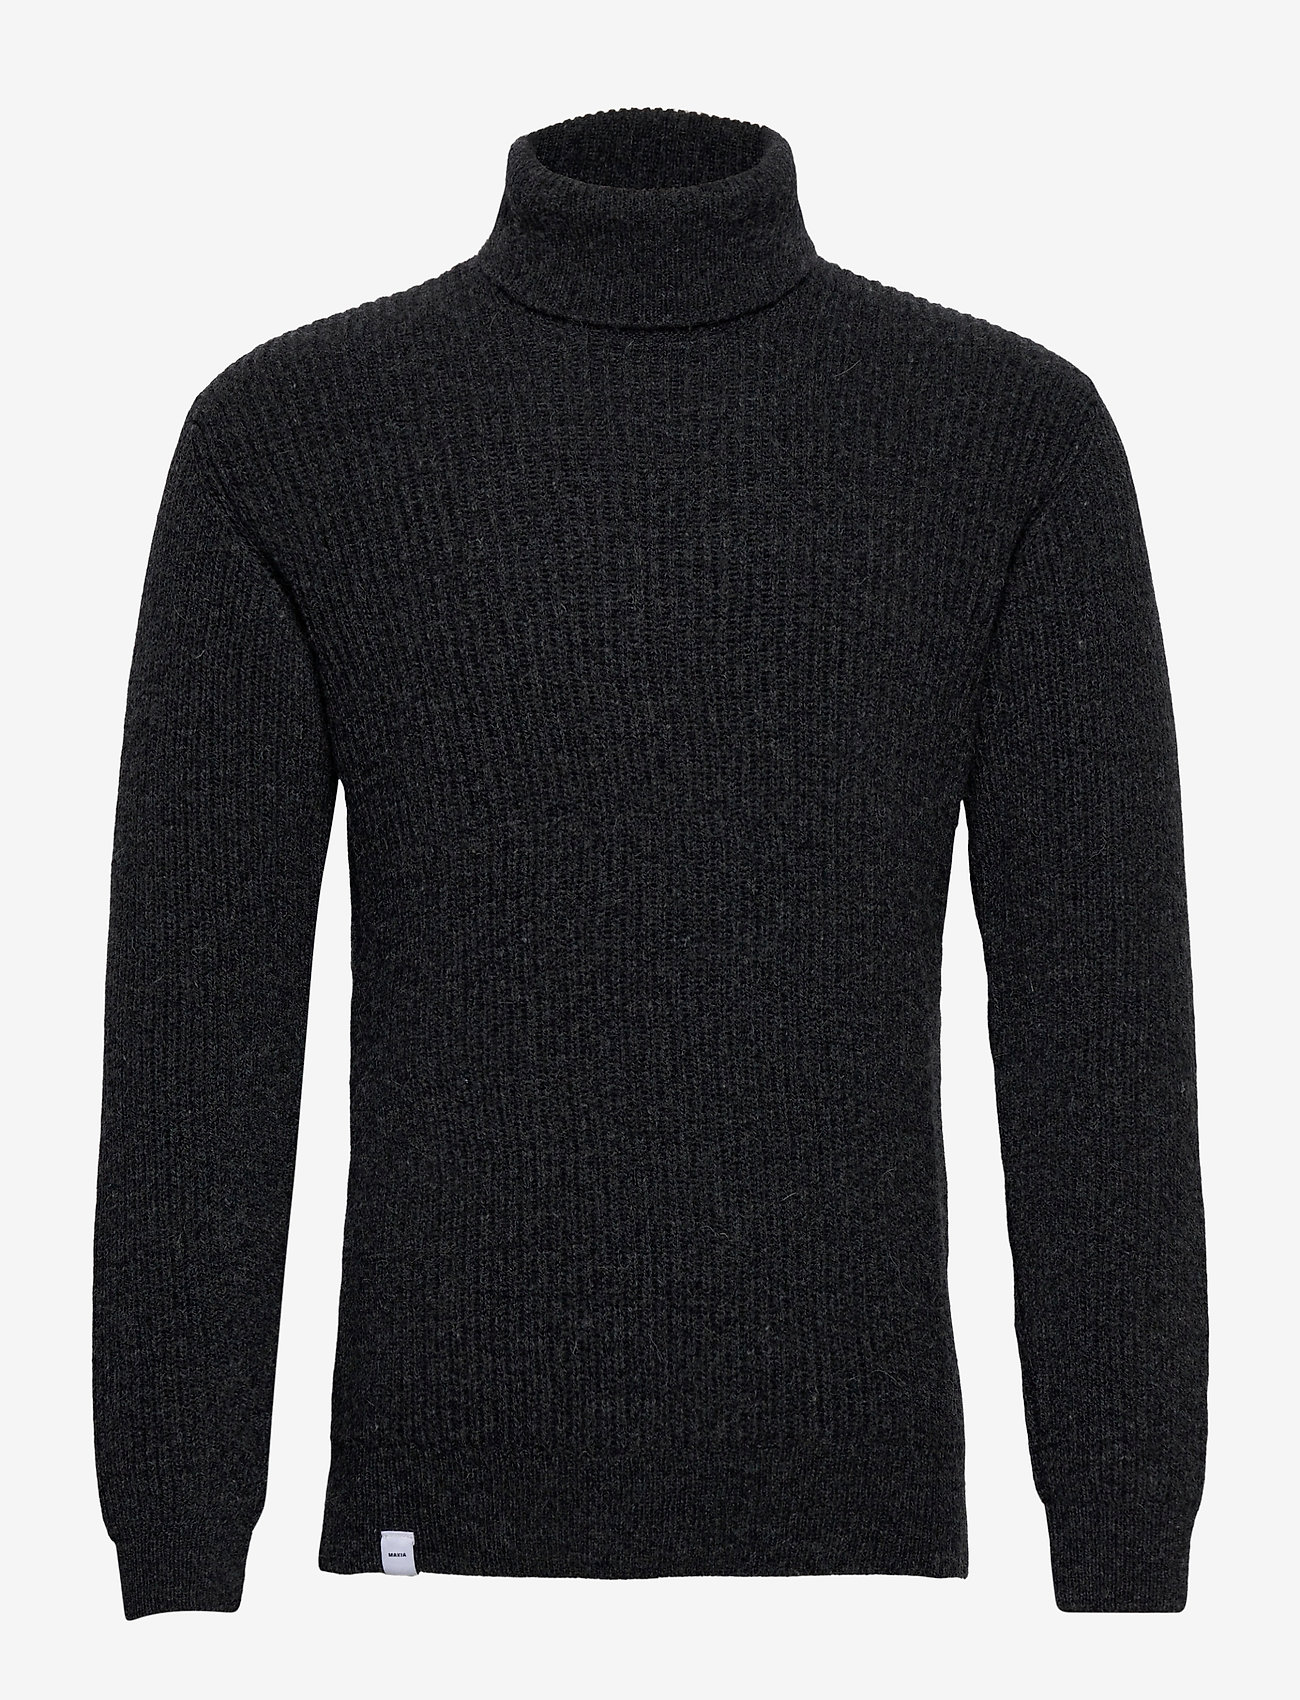 Makia Isle Knit - Strikkevarer DARK GREY - Menn Klær